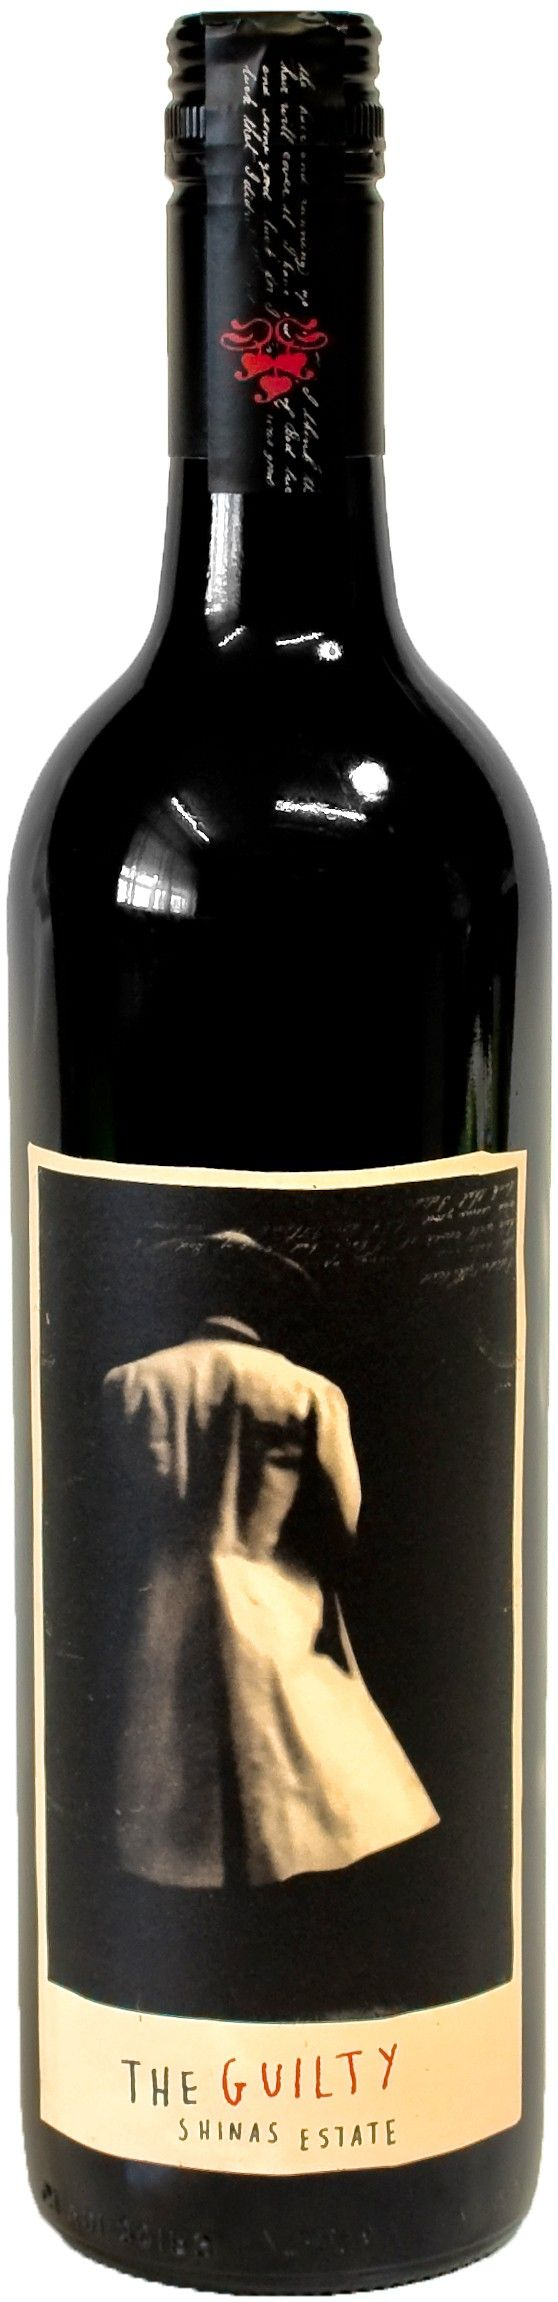 "Shinas Estate ""The Guilty"" Shiraz (2010) Red Wine http://www.topaustralianwines.com.au/shinas-estate-the-guilty-shiraz-2010-red-wine"